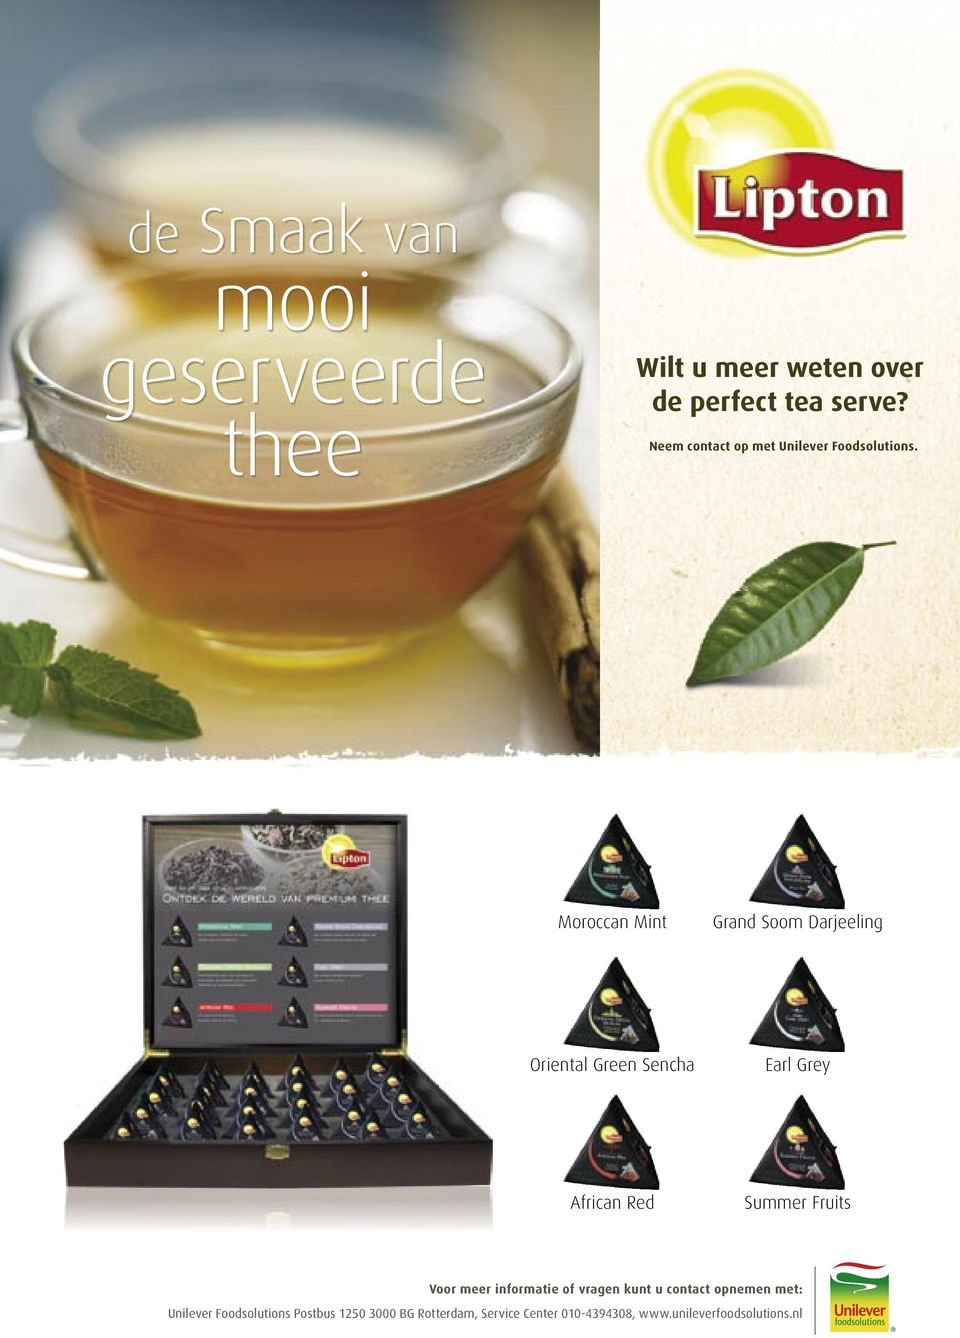 Moroccan Mint Grand Soom Darjeeling Oriental Green Sencha Earl Grey African Red Summer Fruits